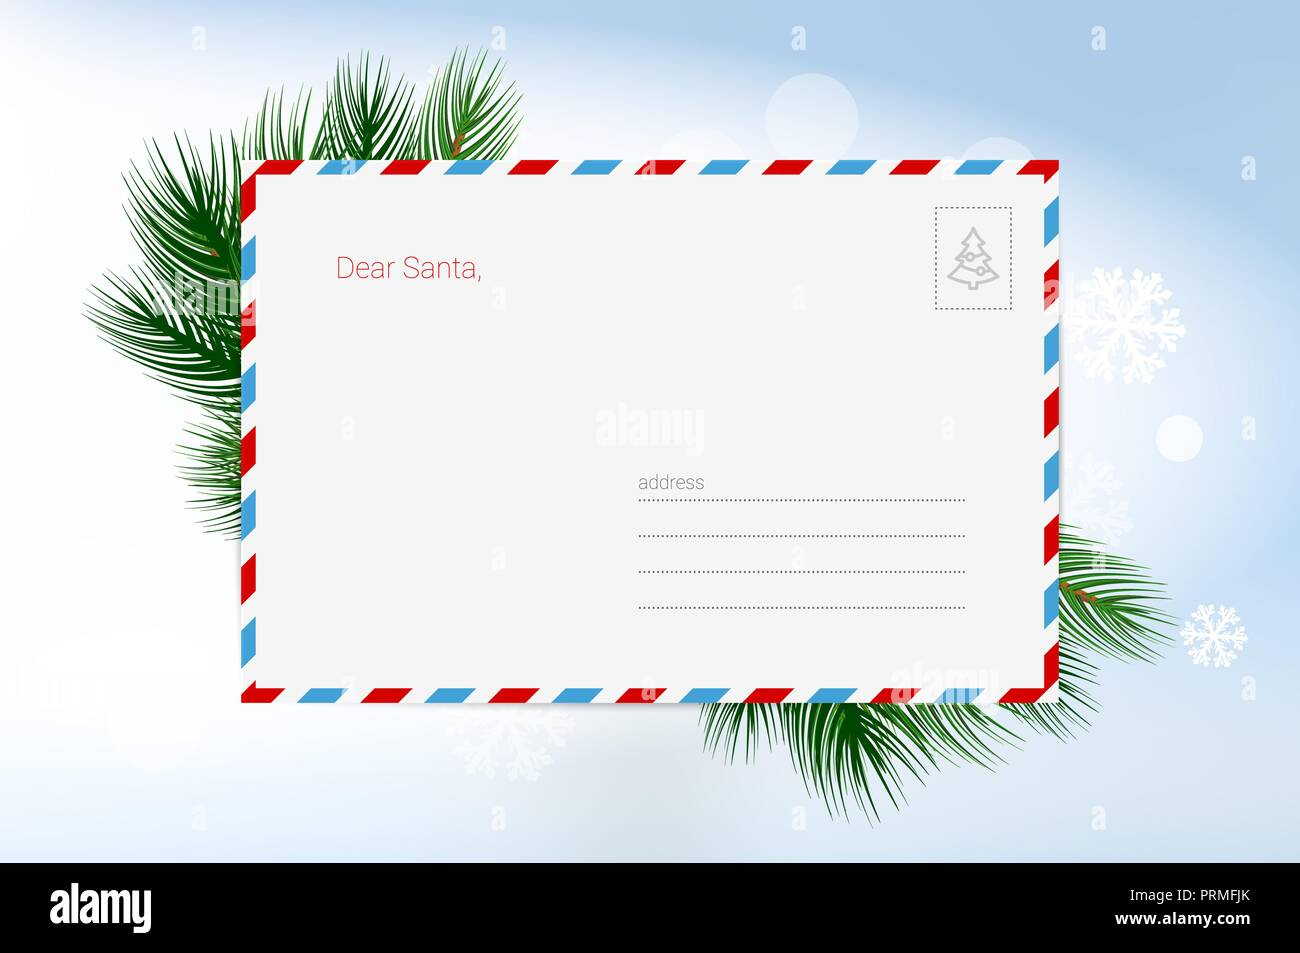 vector christmas greeting card template merry christmas and happy new year design elements resource for creating postcards calendars or posters